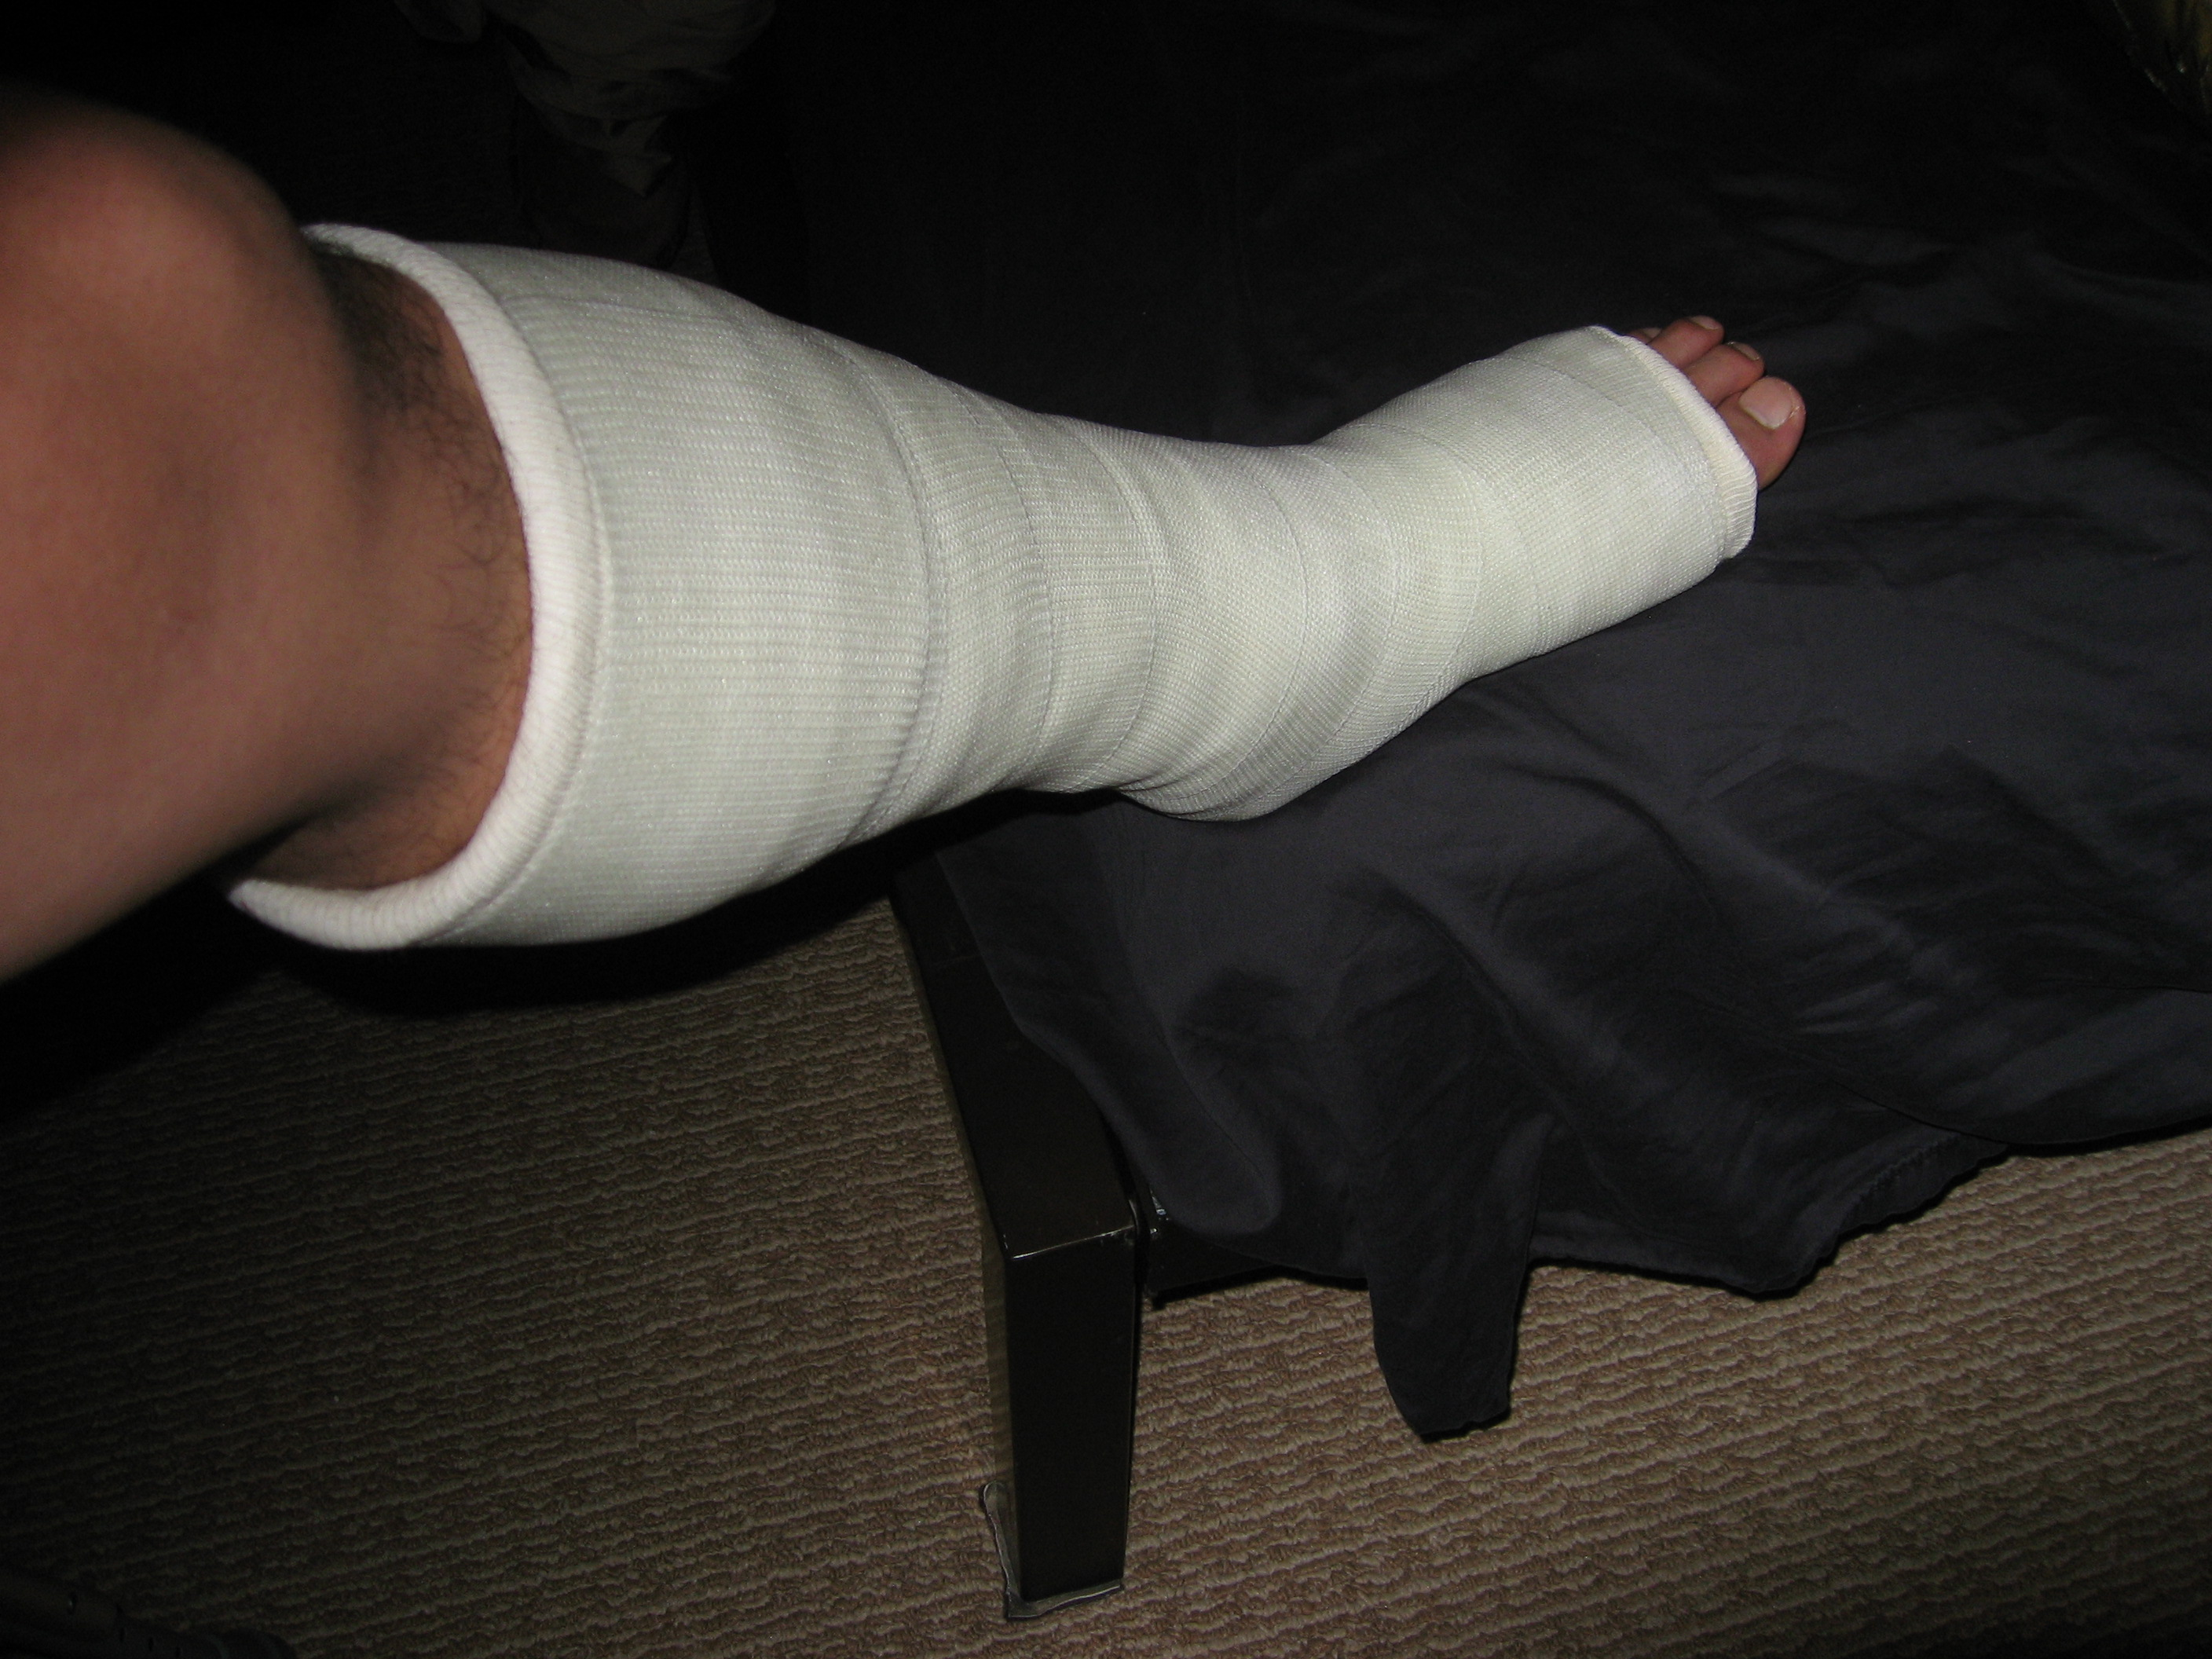 cast leg on bed